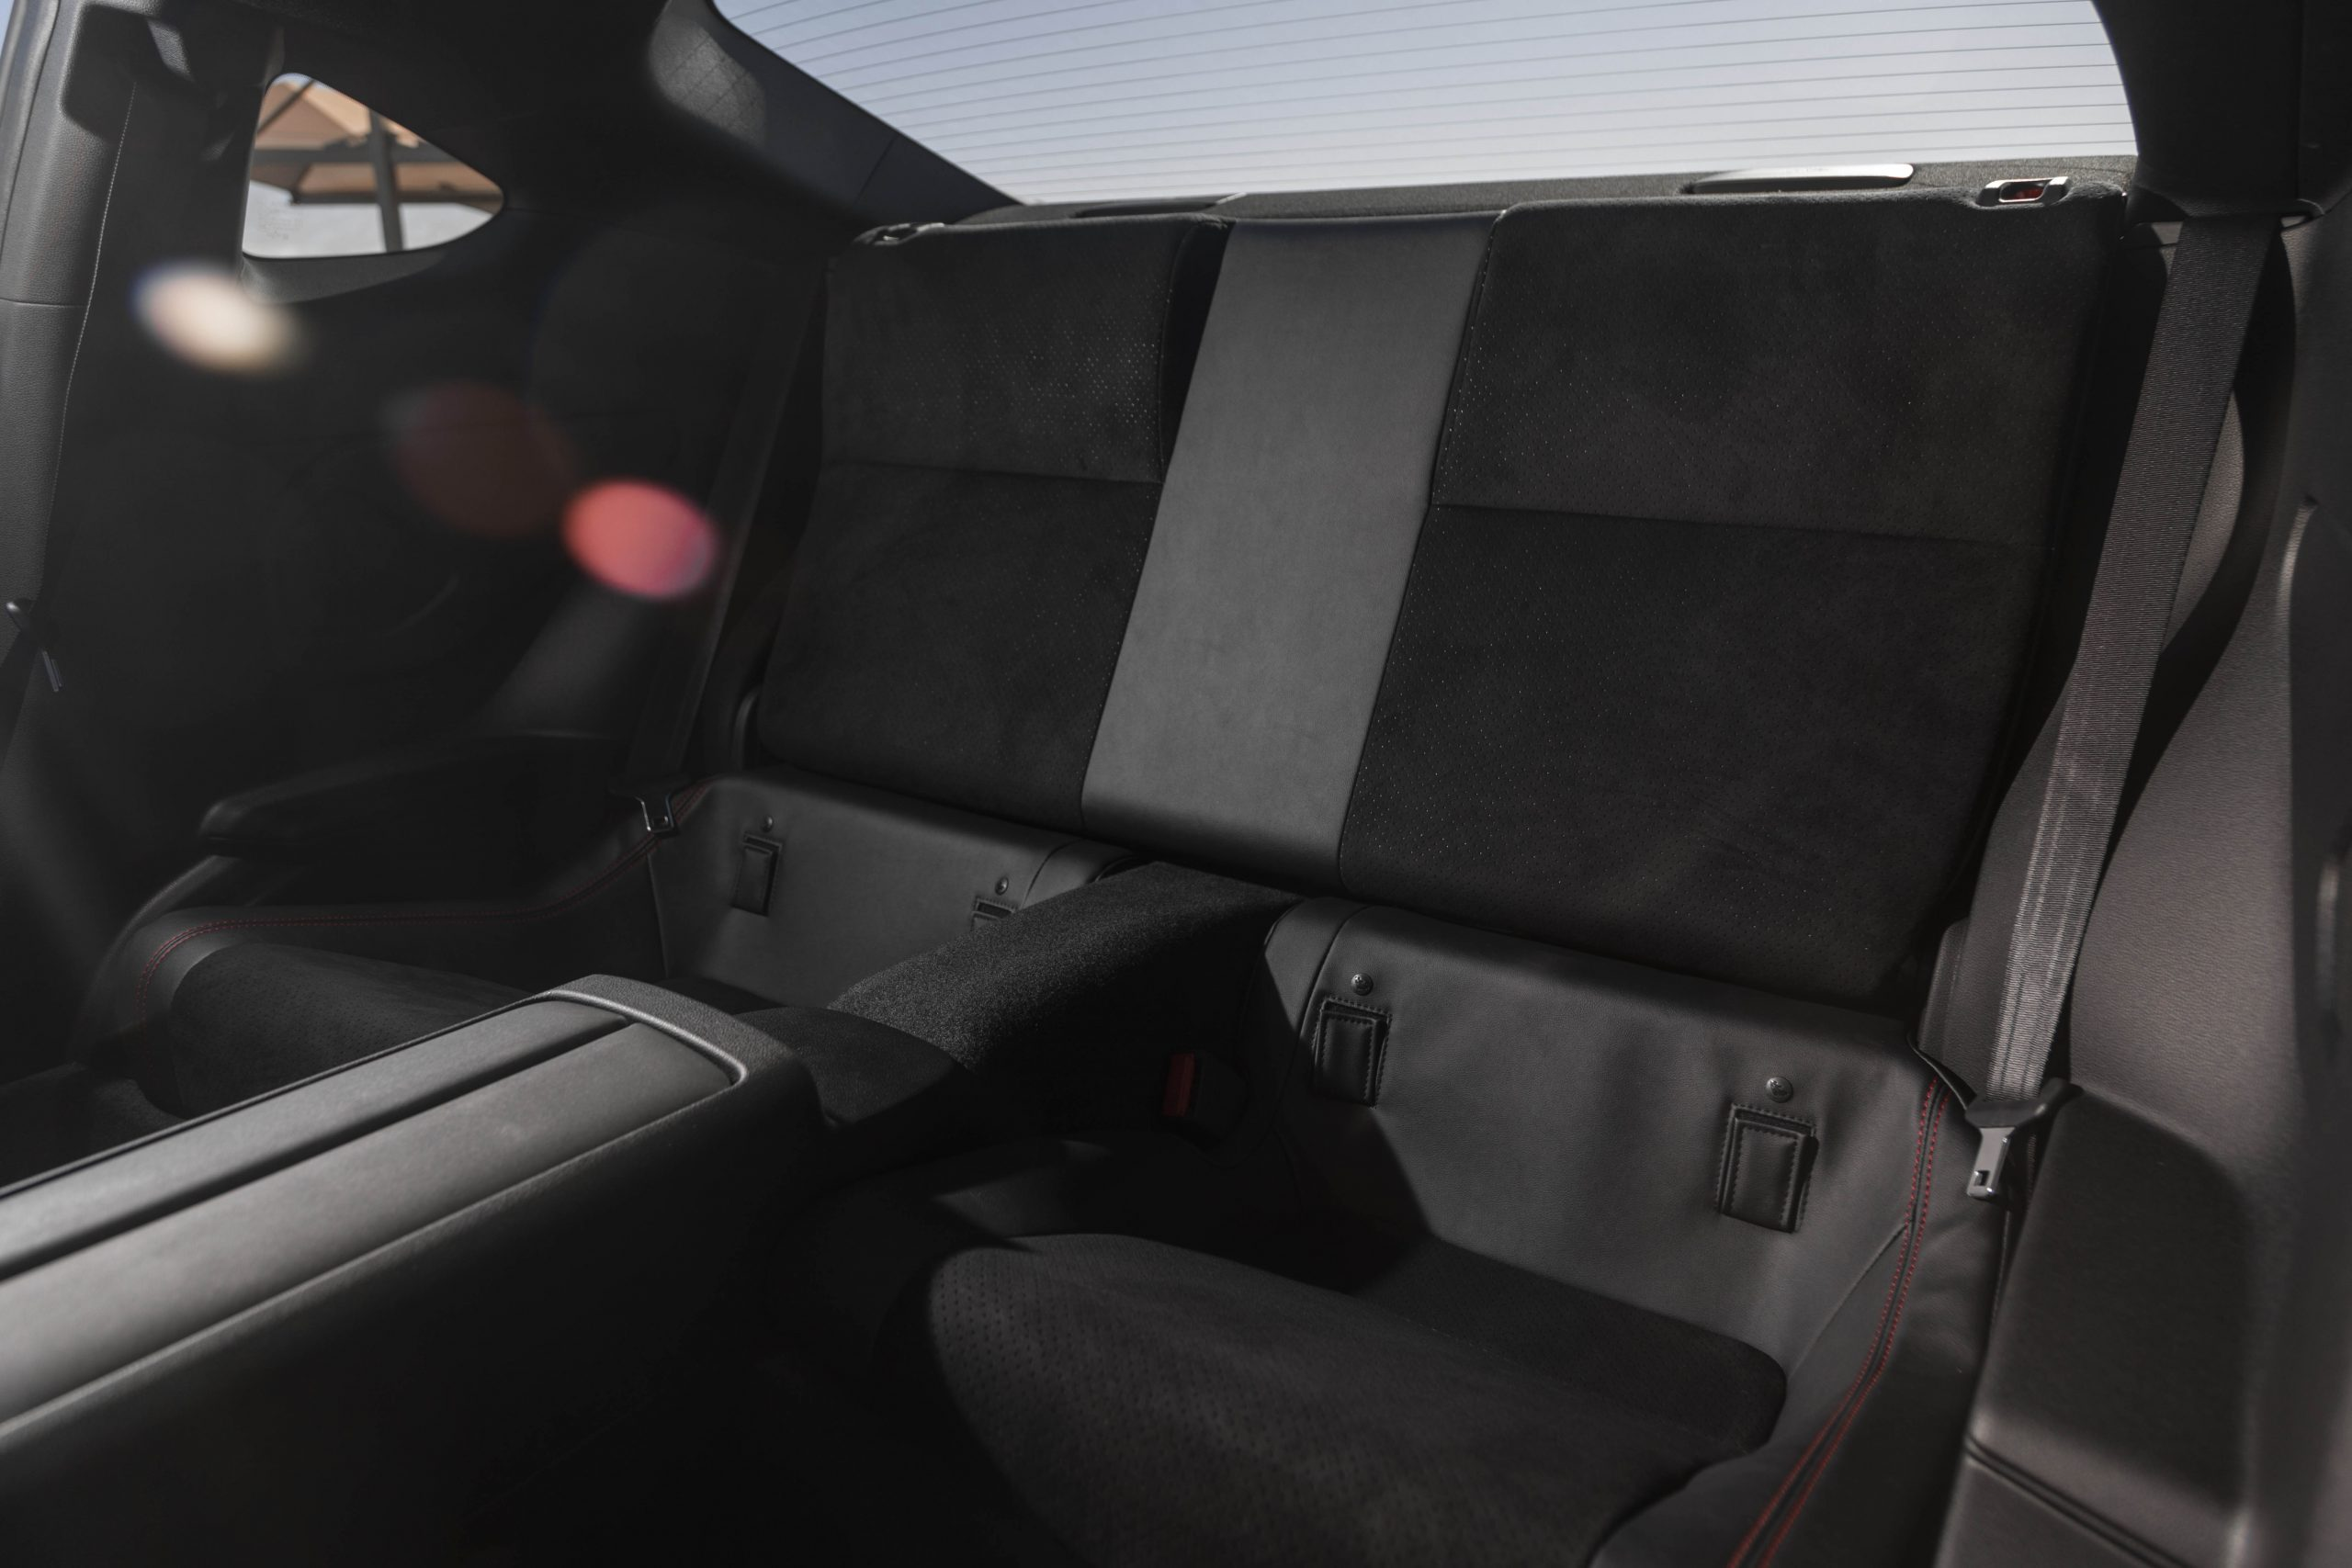 New 2022 Subaru BRZ interior rear seat